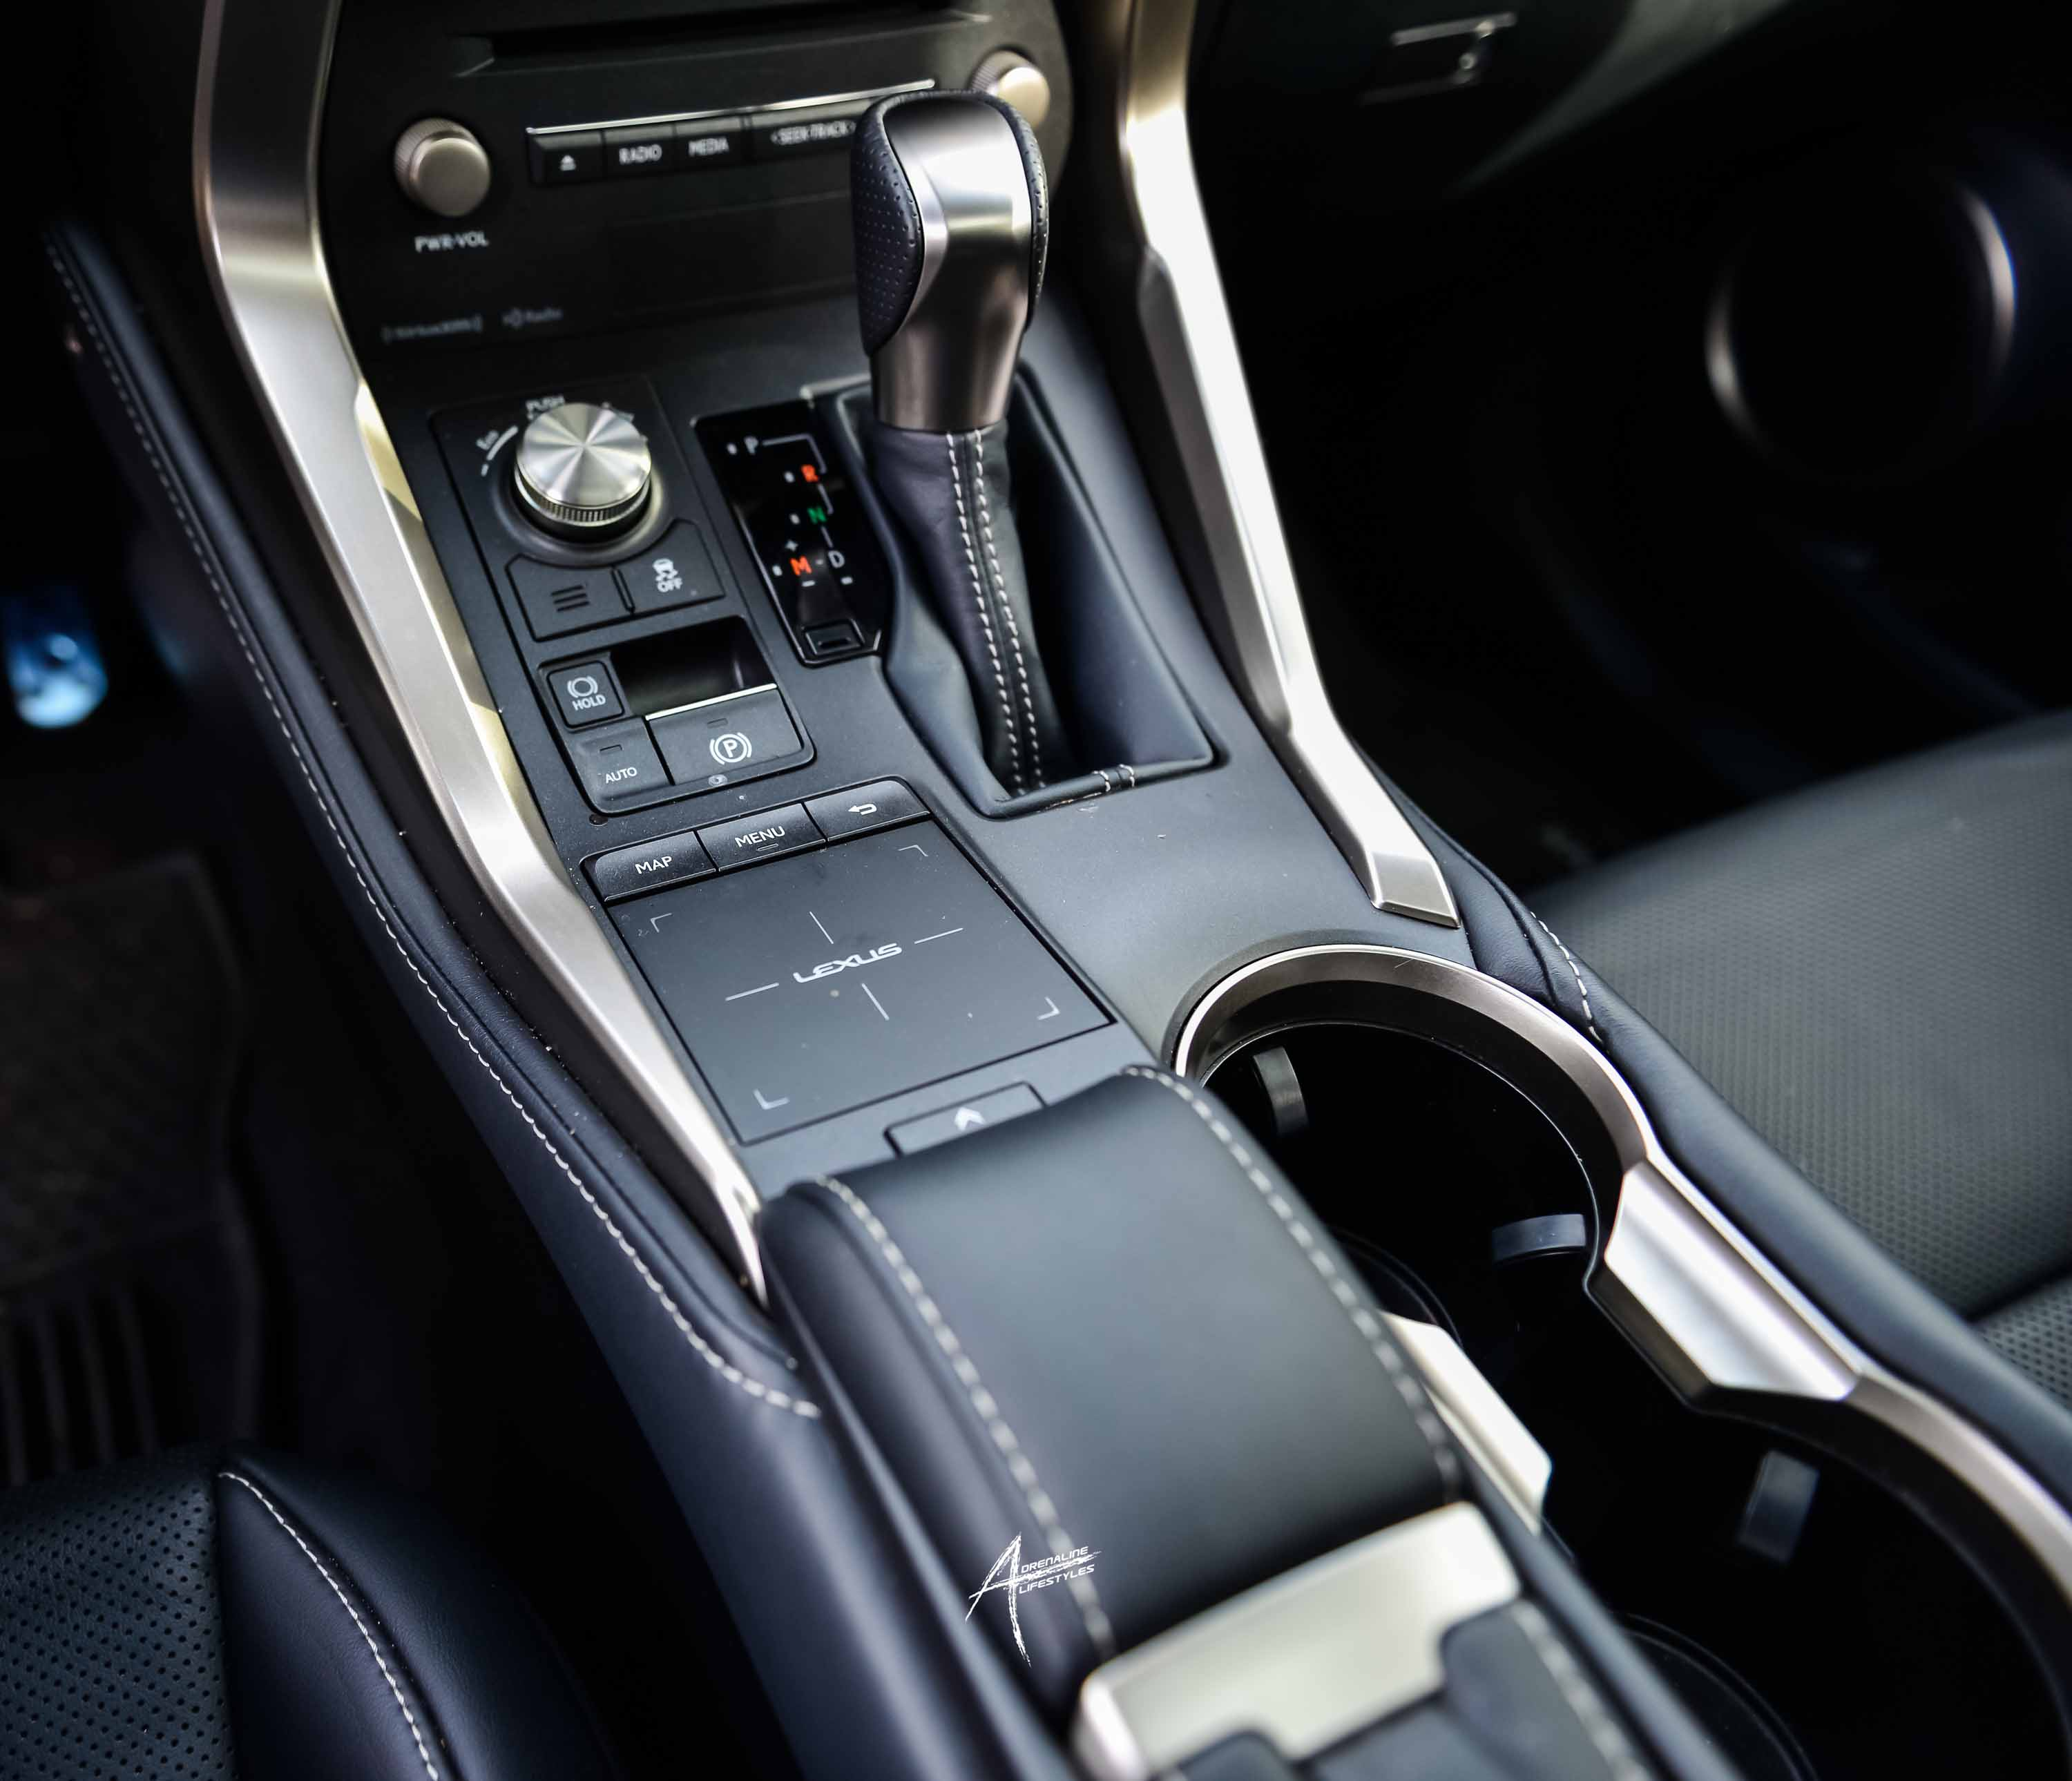 The Lexus NX 300: The Sporty Crossover